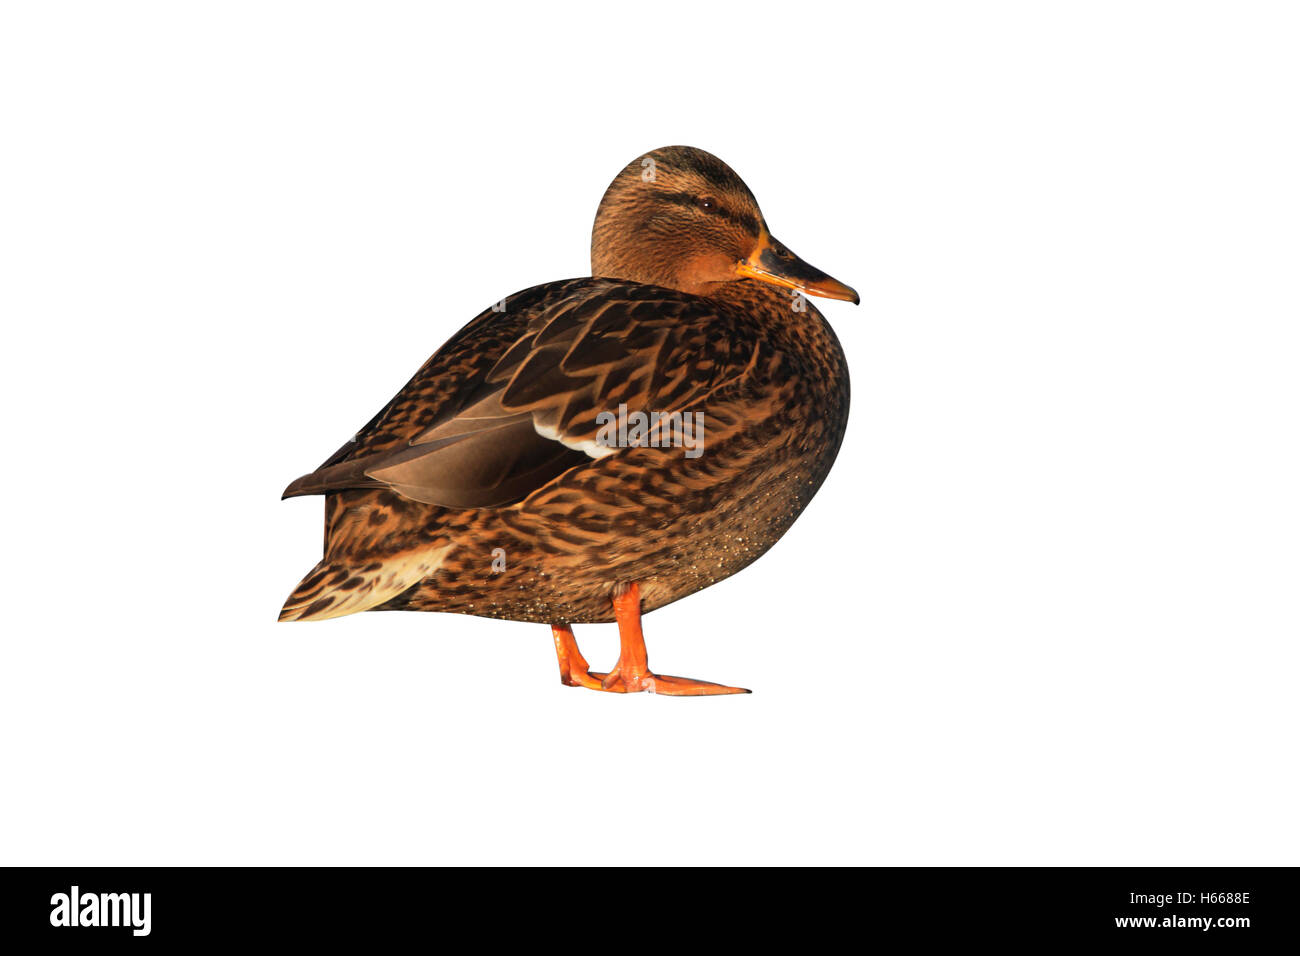 Mallard, Anas platyrhynchos, a single female standing on ice by water, Dumfries, Scotland, winter 2009 - Stock Image